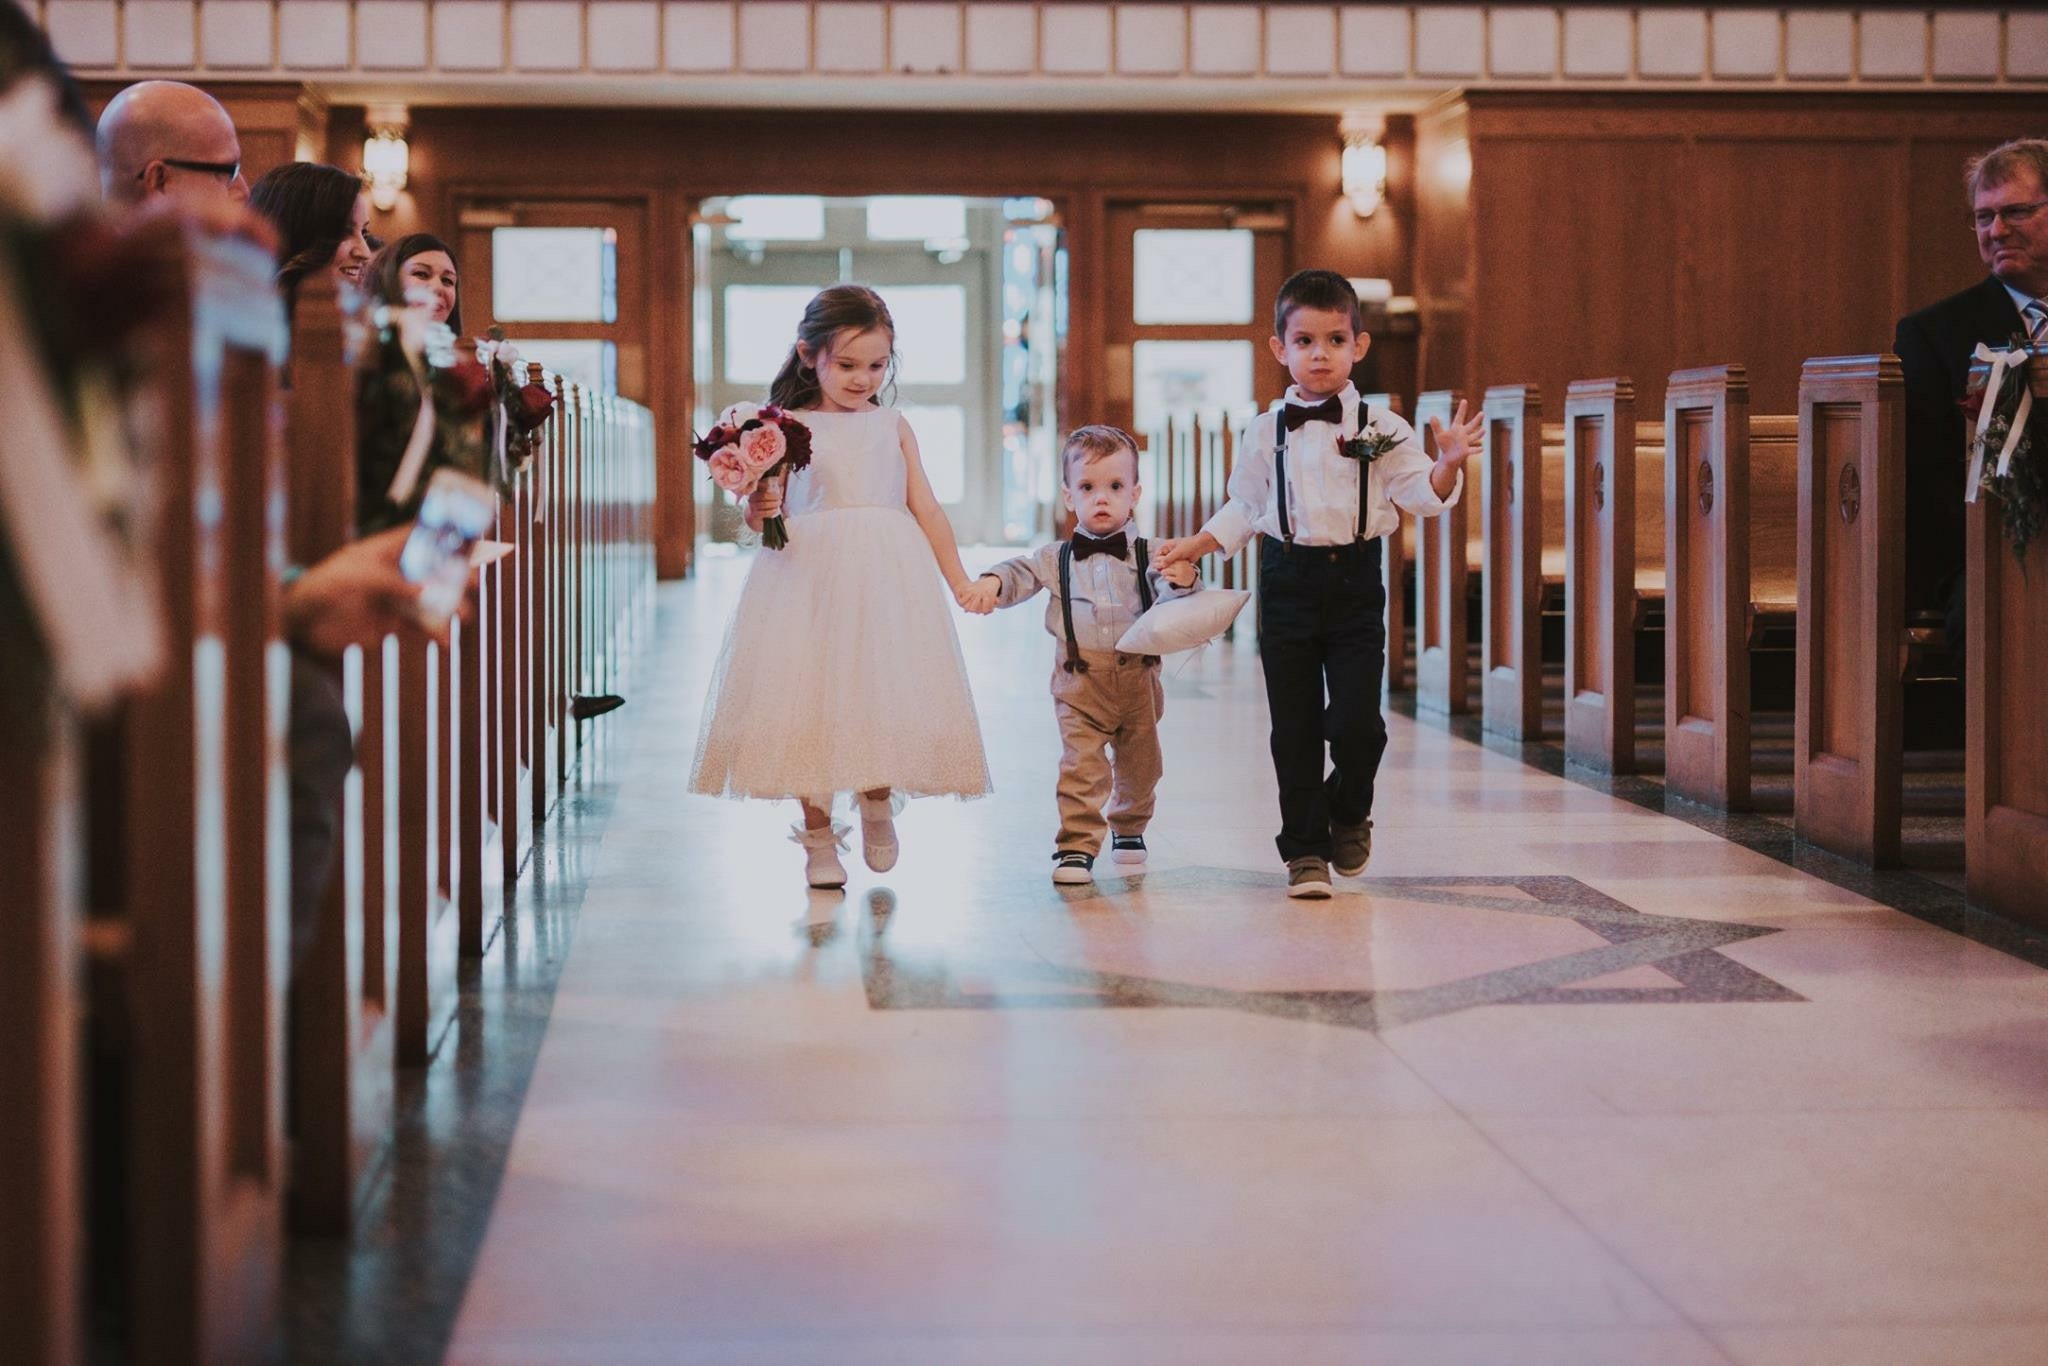 mary bell photography // little miss lovely floral design // blush pink burgundy wedding flowers // St. Francis De Sales Catholic Church salisbury md wedding